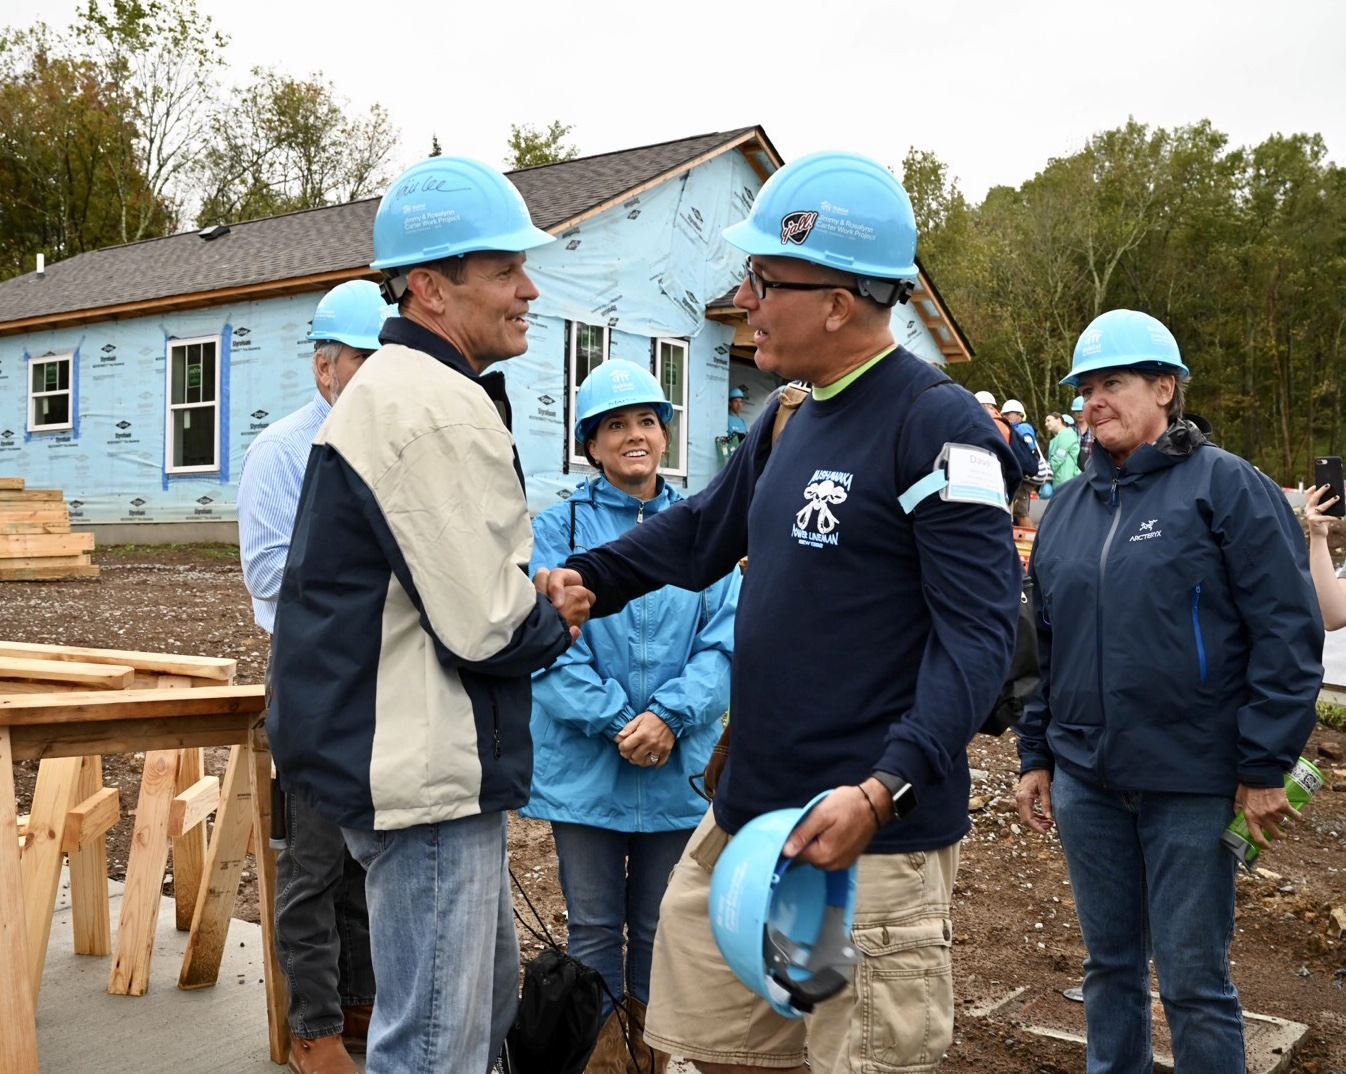 First Lady Maria participates in Carter Work Build with Habitat for Humanity